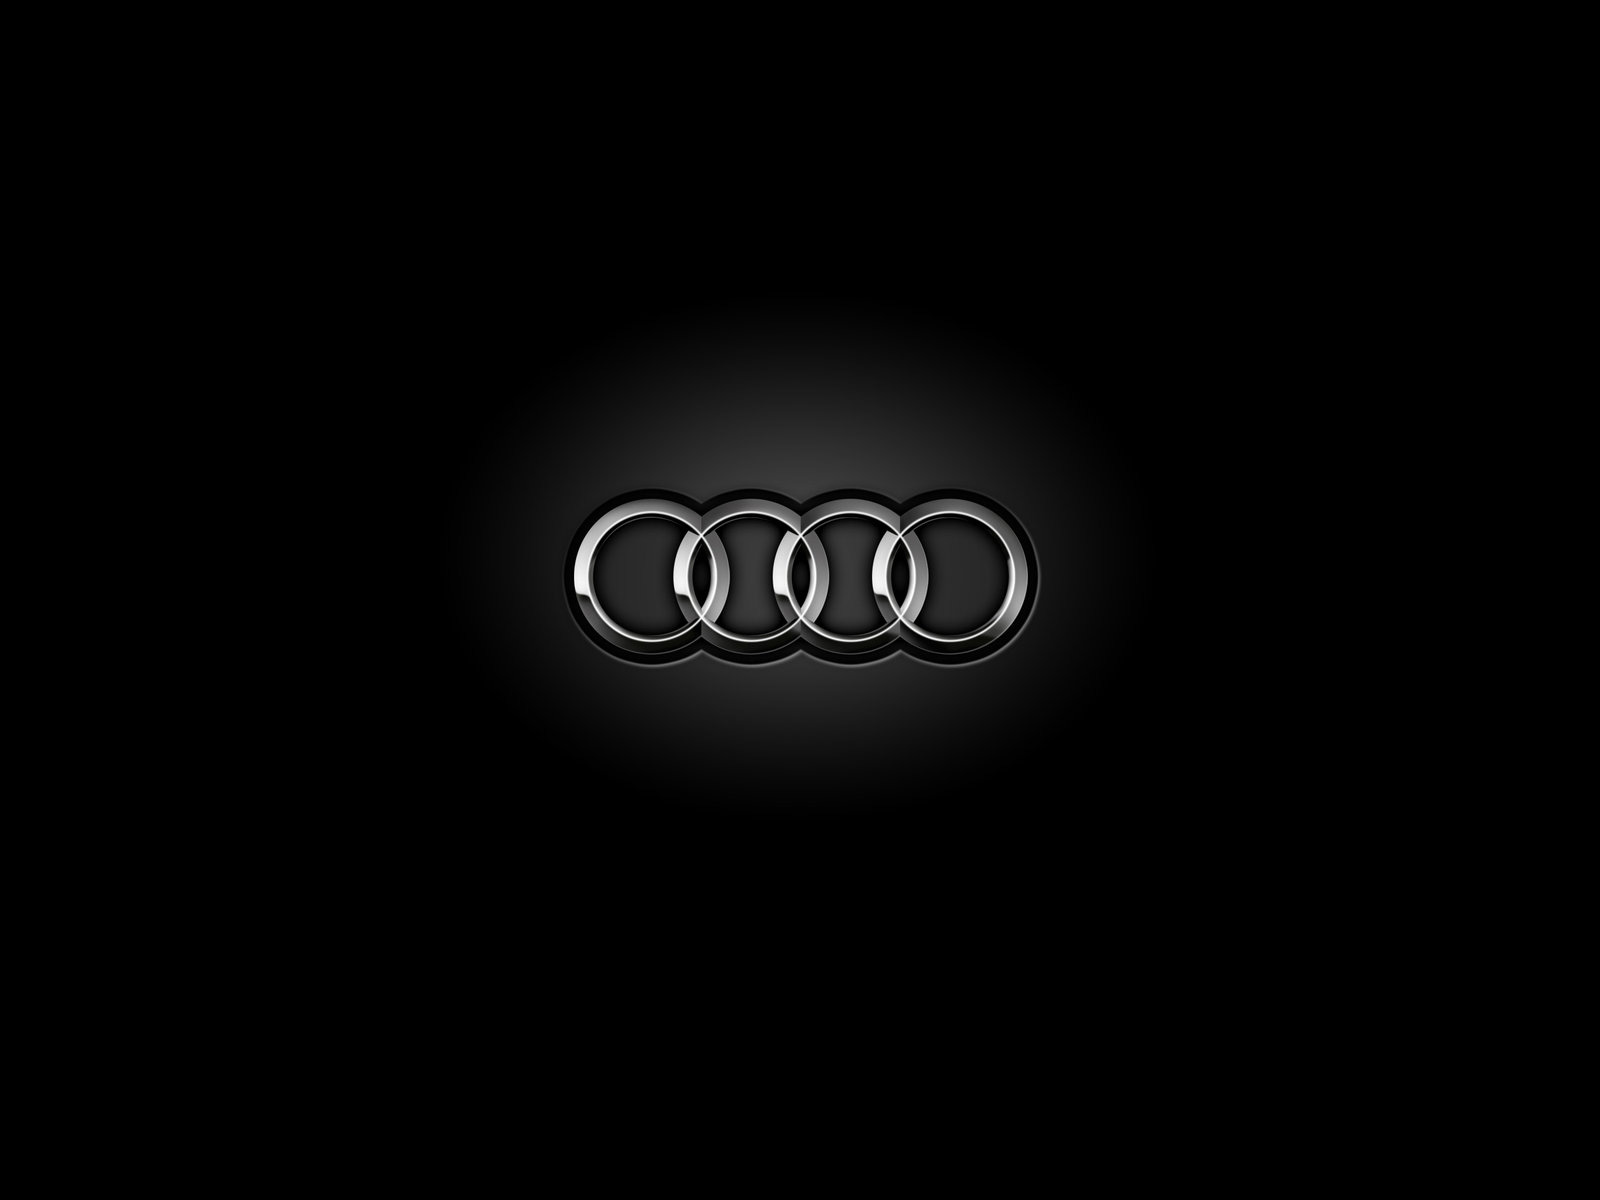 Car Logo Wallpapers